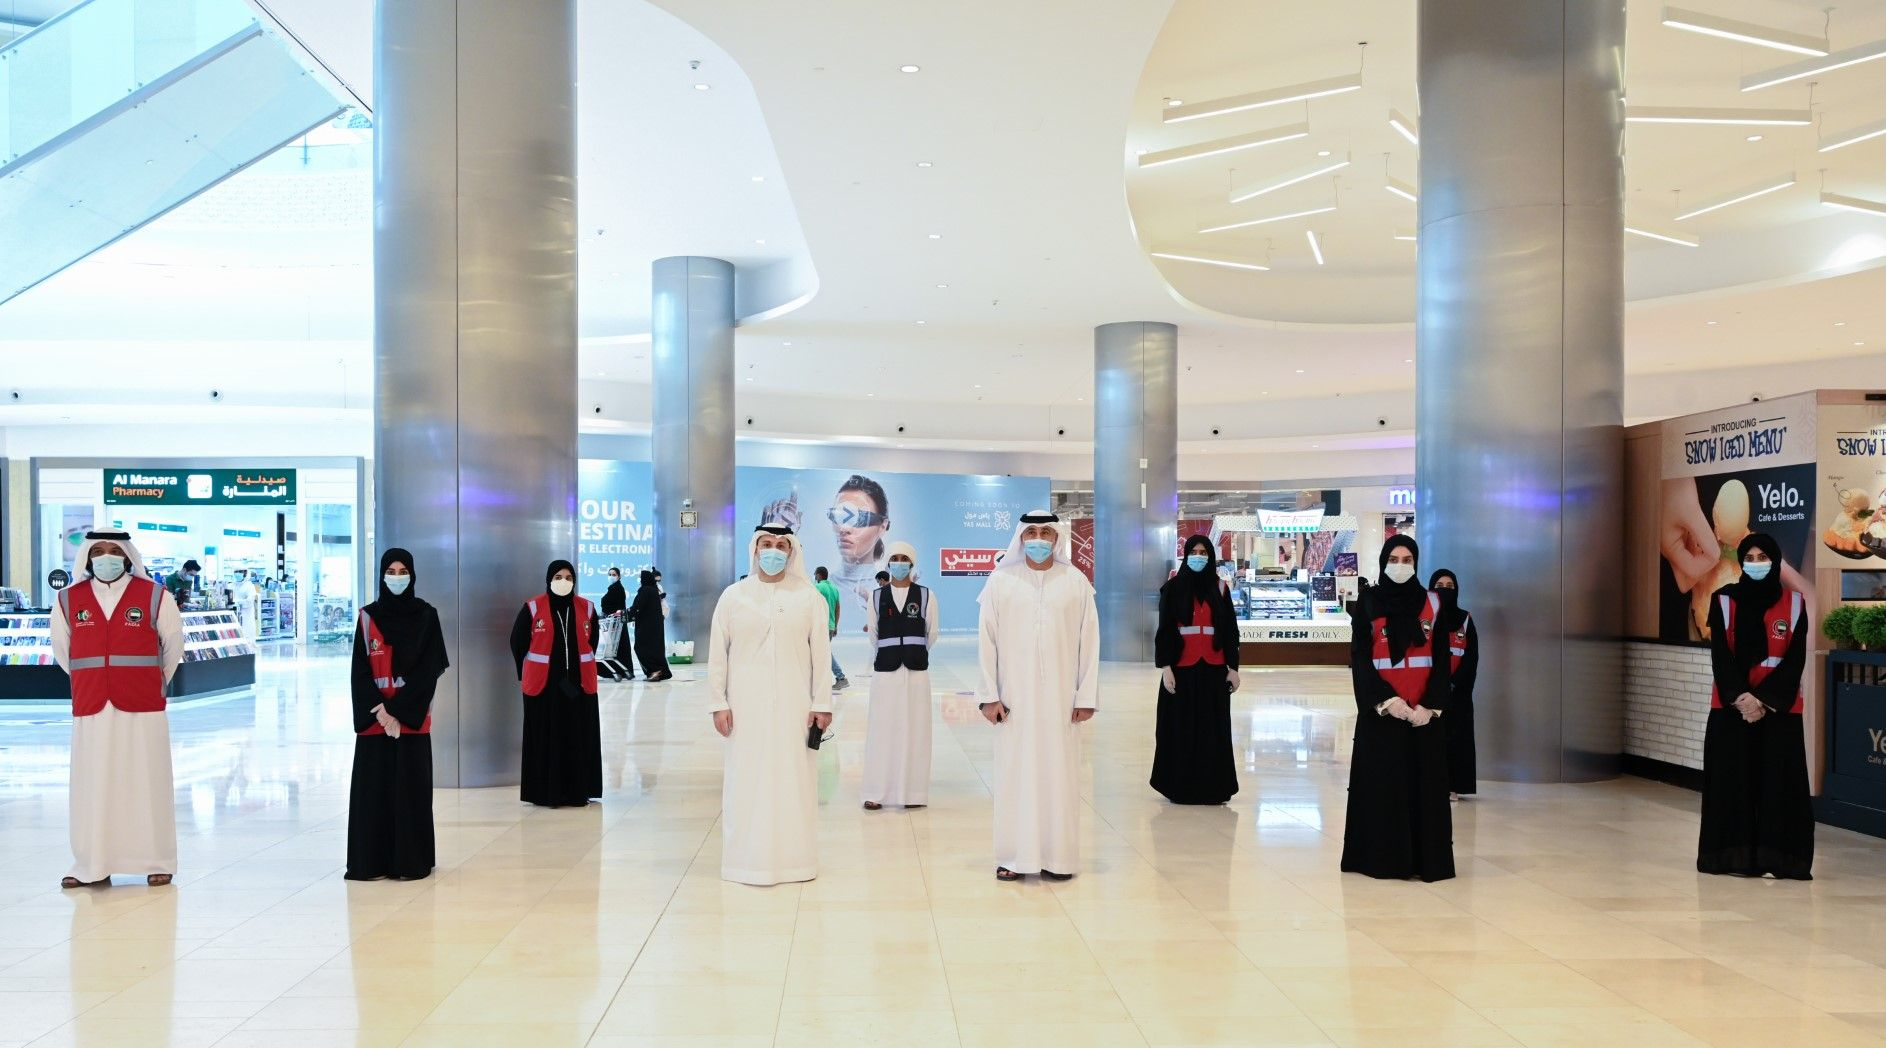 Abu Dhabi launches campaign to spread awareness about COVID among businesses